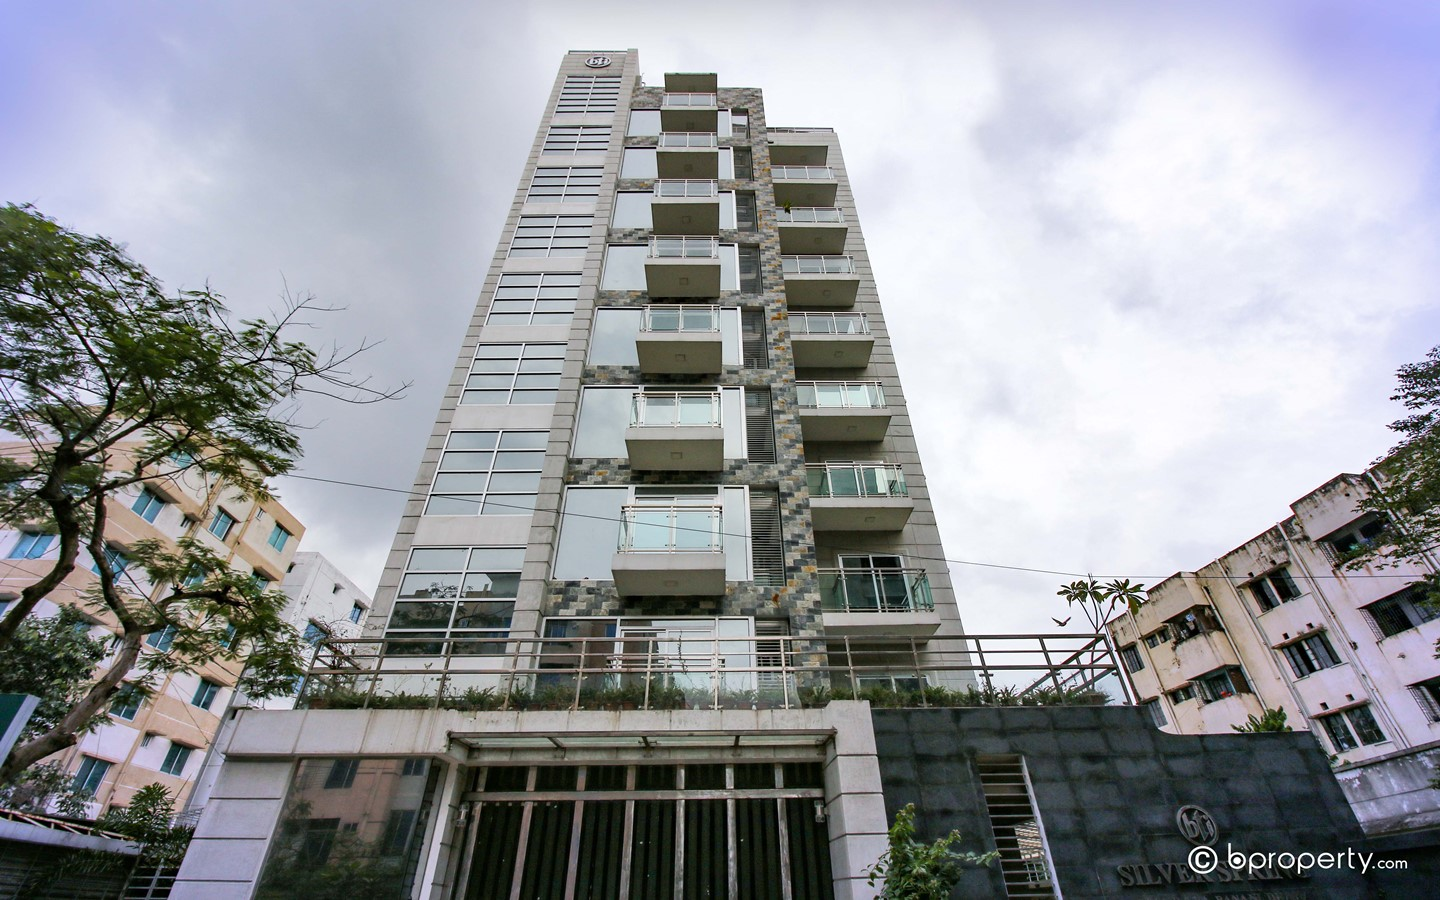 Apartment for sale in Banani